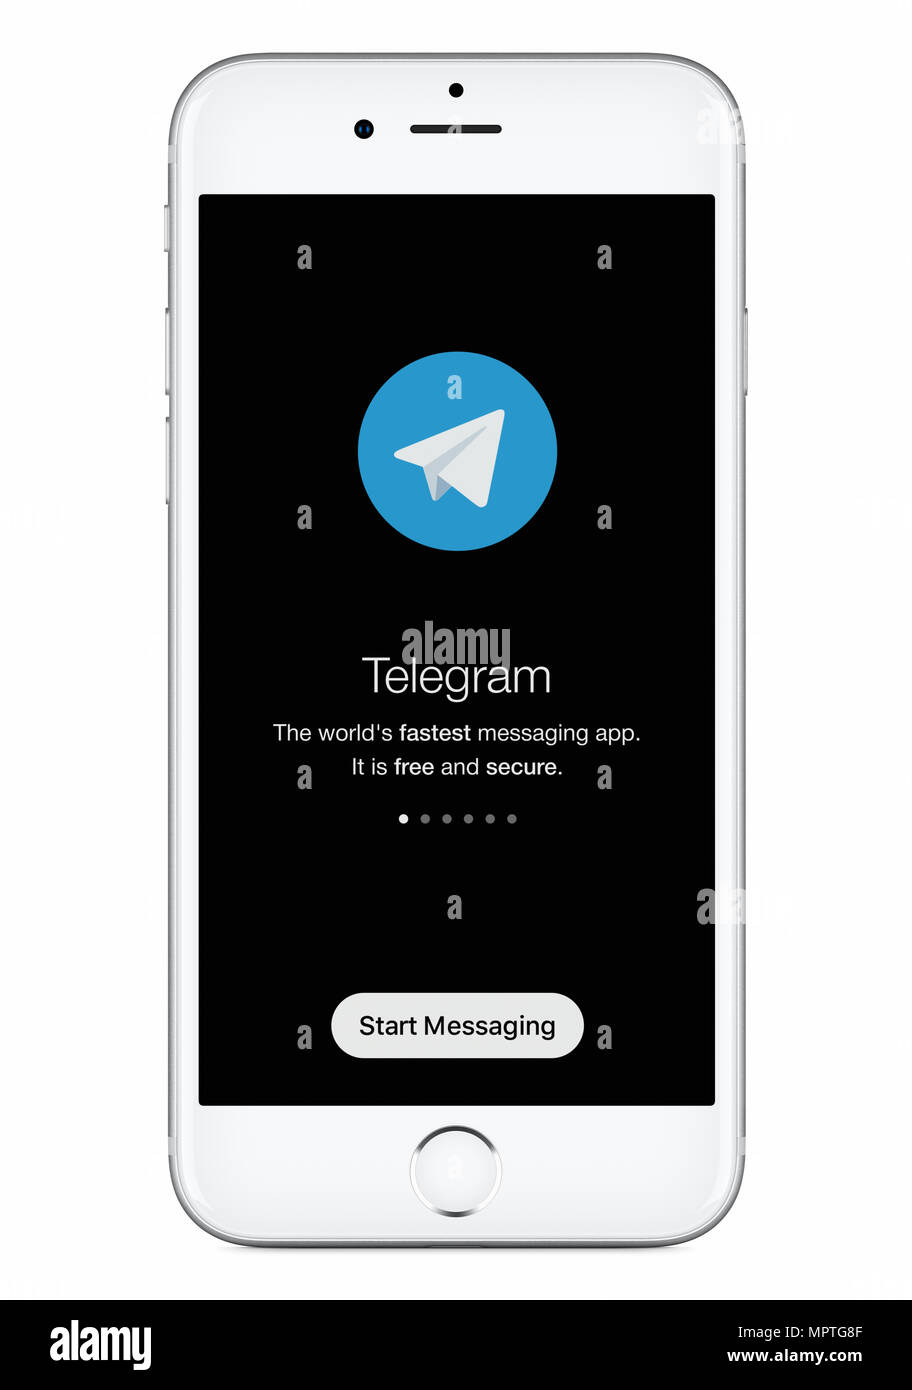 Telegram messenger launch screen with Telegram logo on white Apple iPhone 8 display. - Stock Image